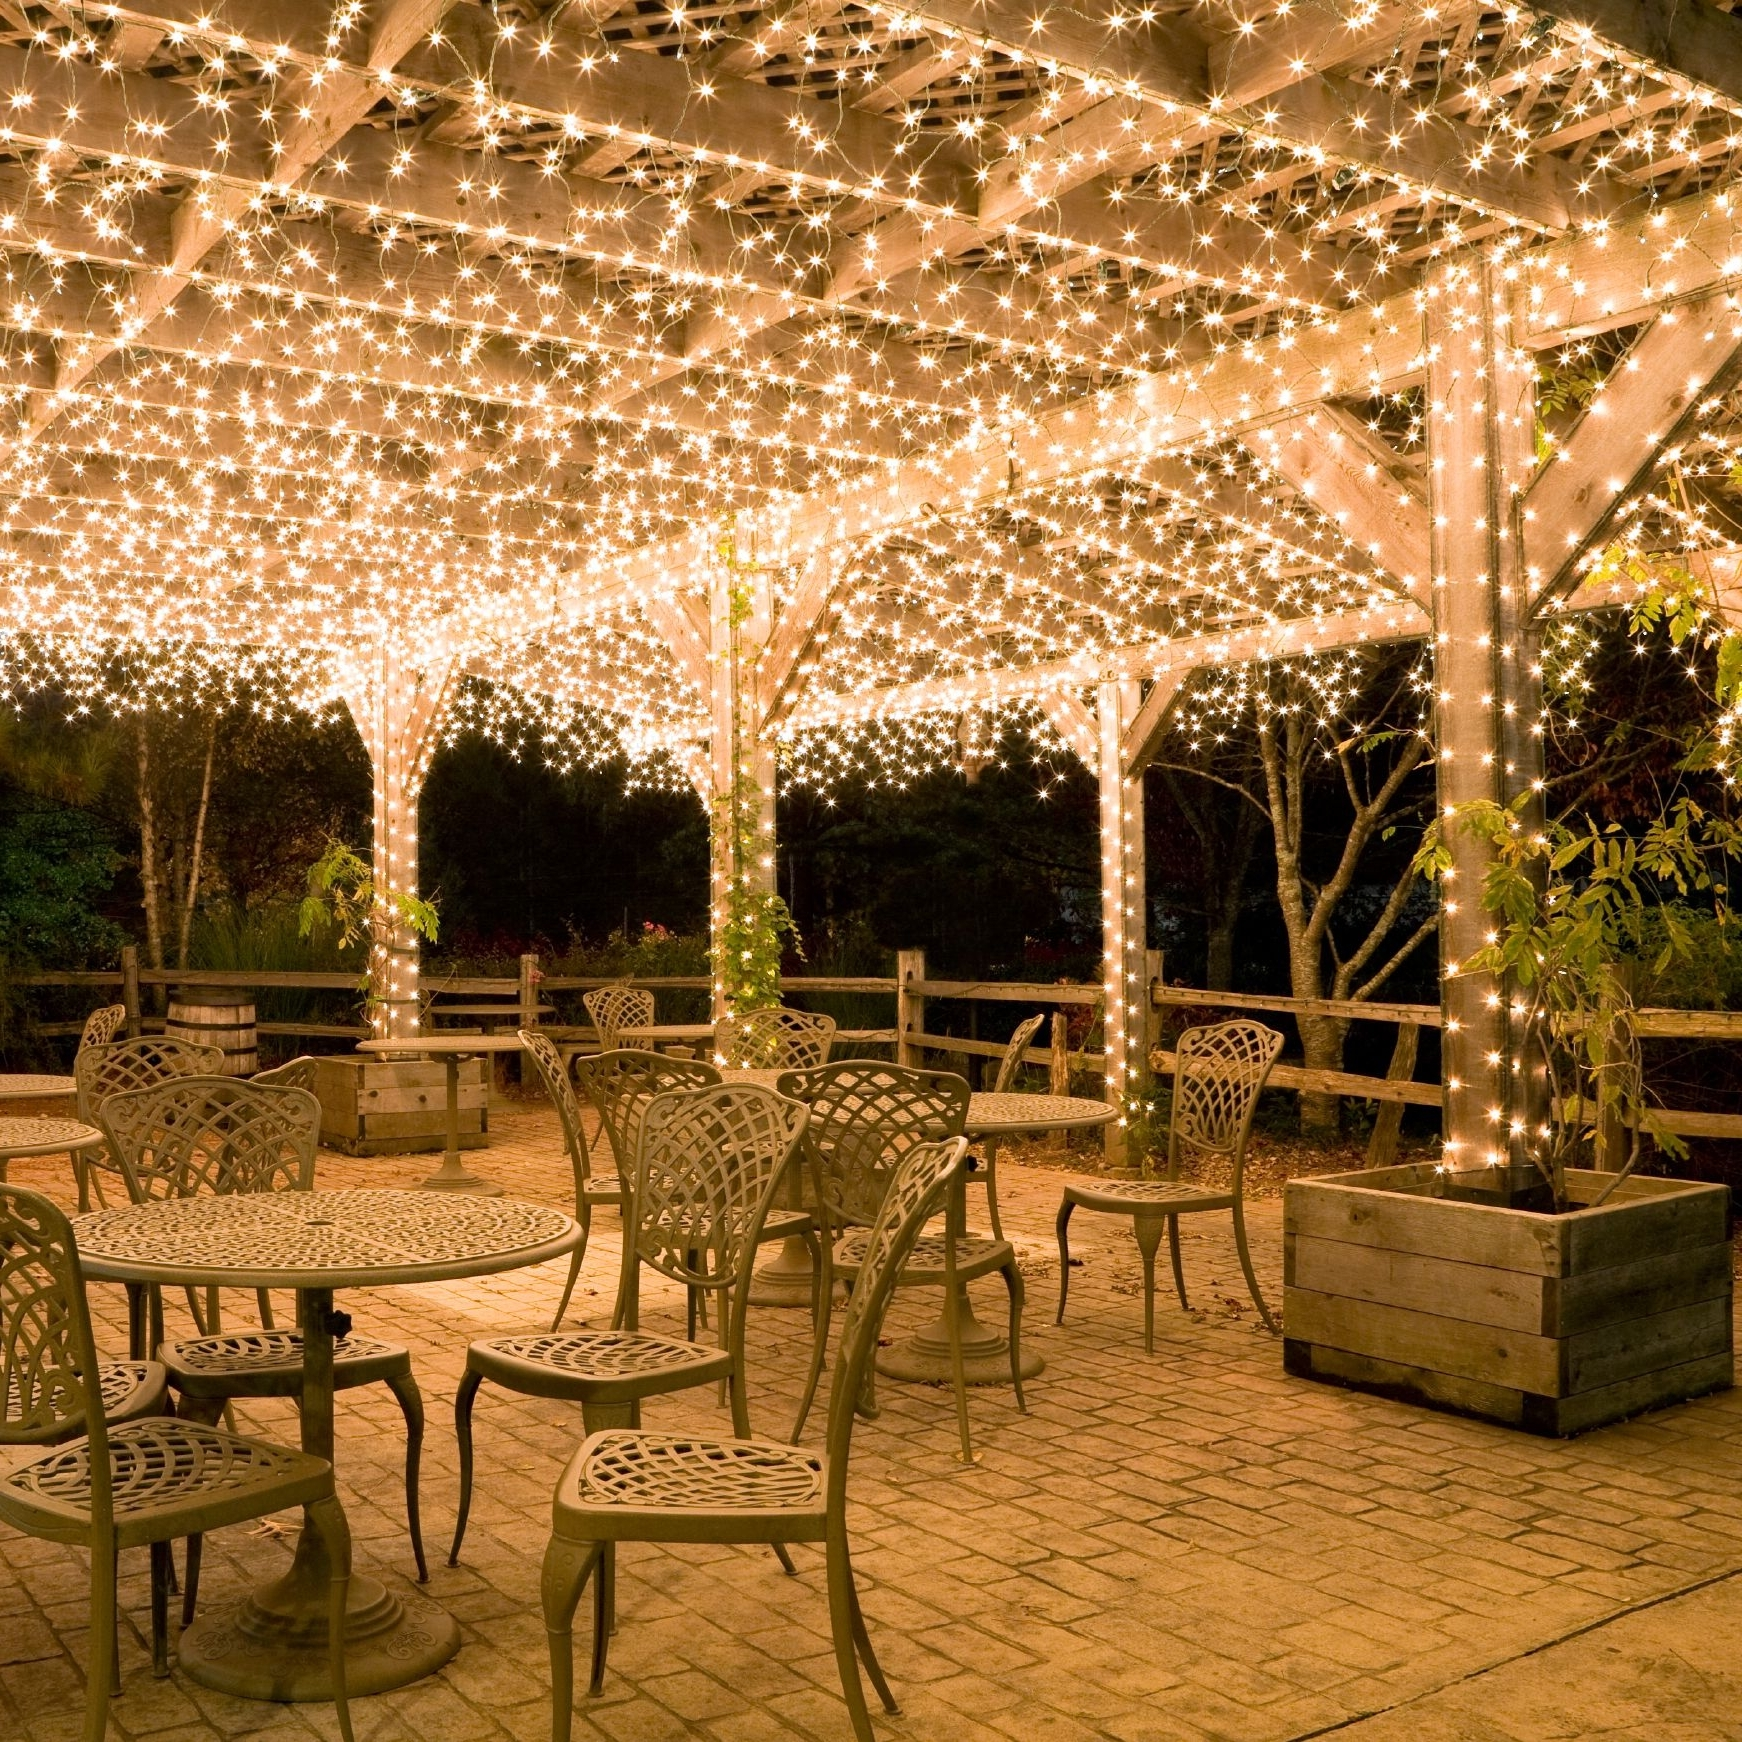 Favorite Hang White Icicle Lights To Create Magical Outdoor Lighting (View 5 of 20)